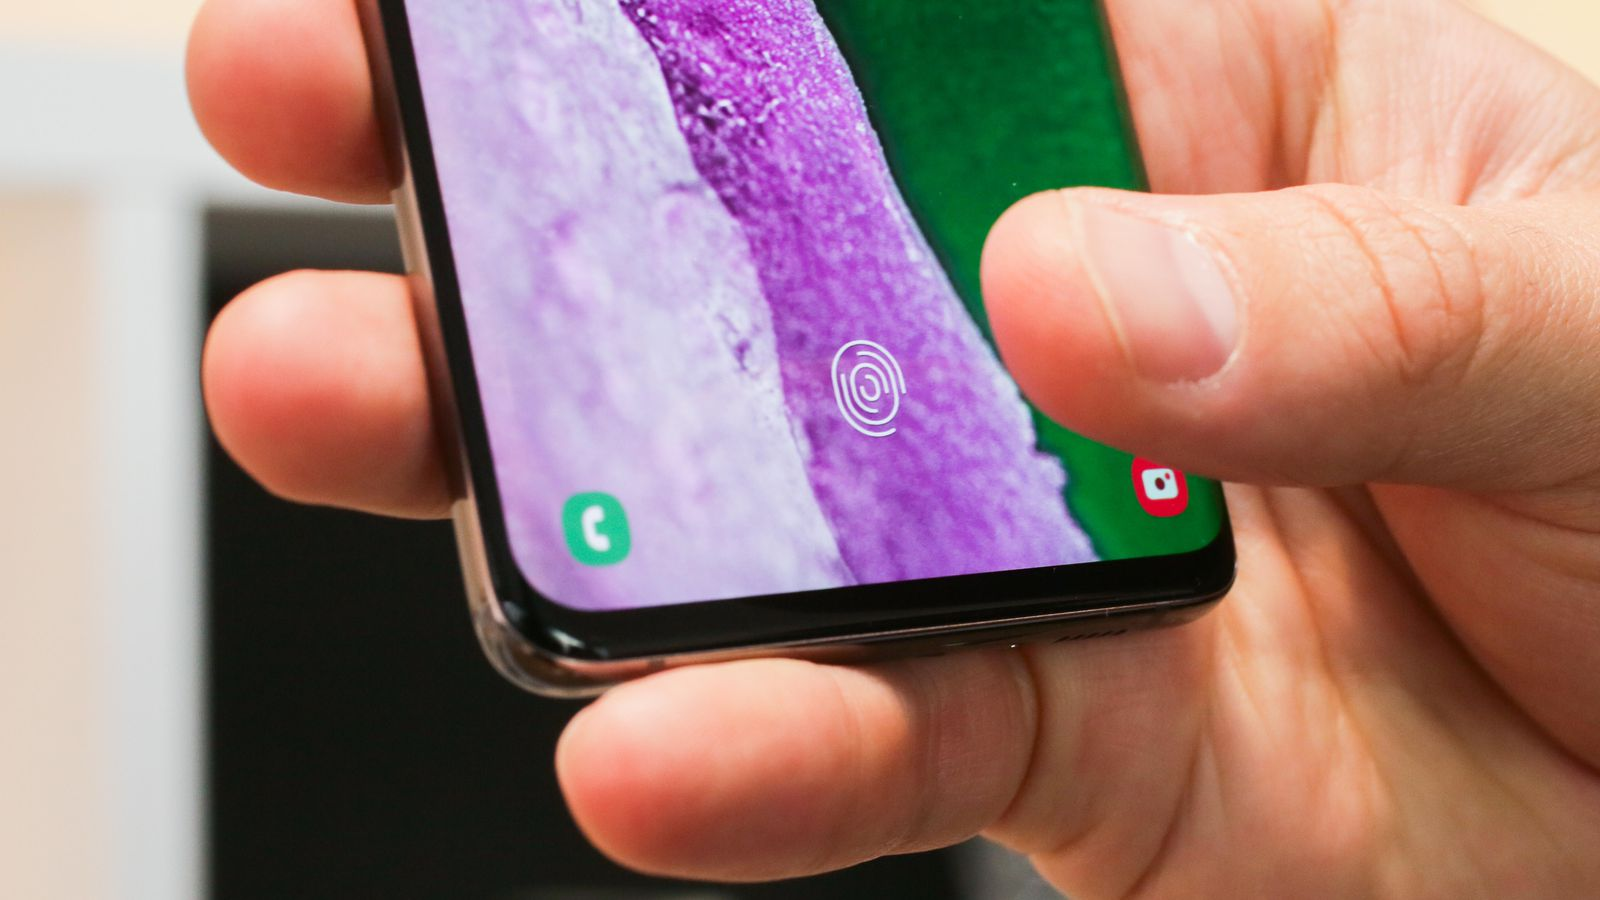 How does work Galaxy S10's Ultrasonic Fingerprint Scanner?